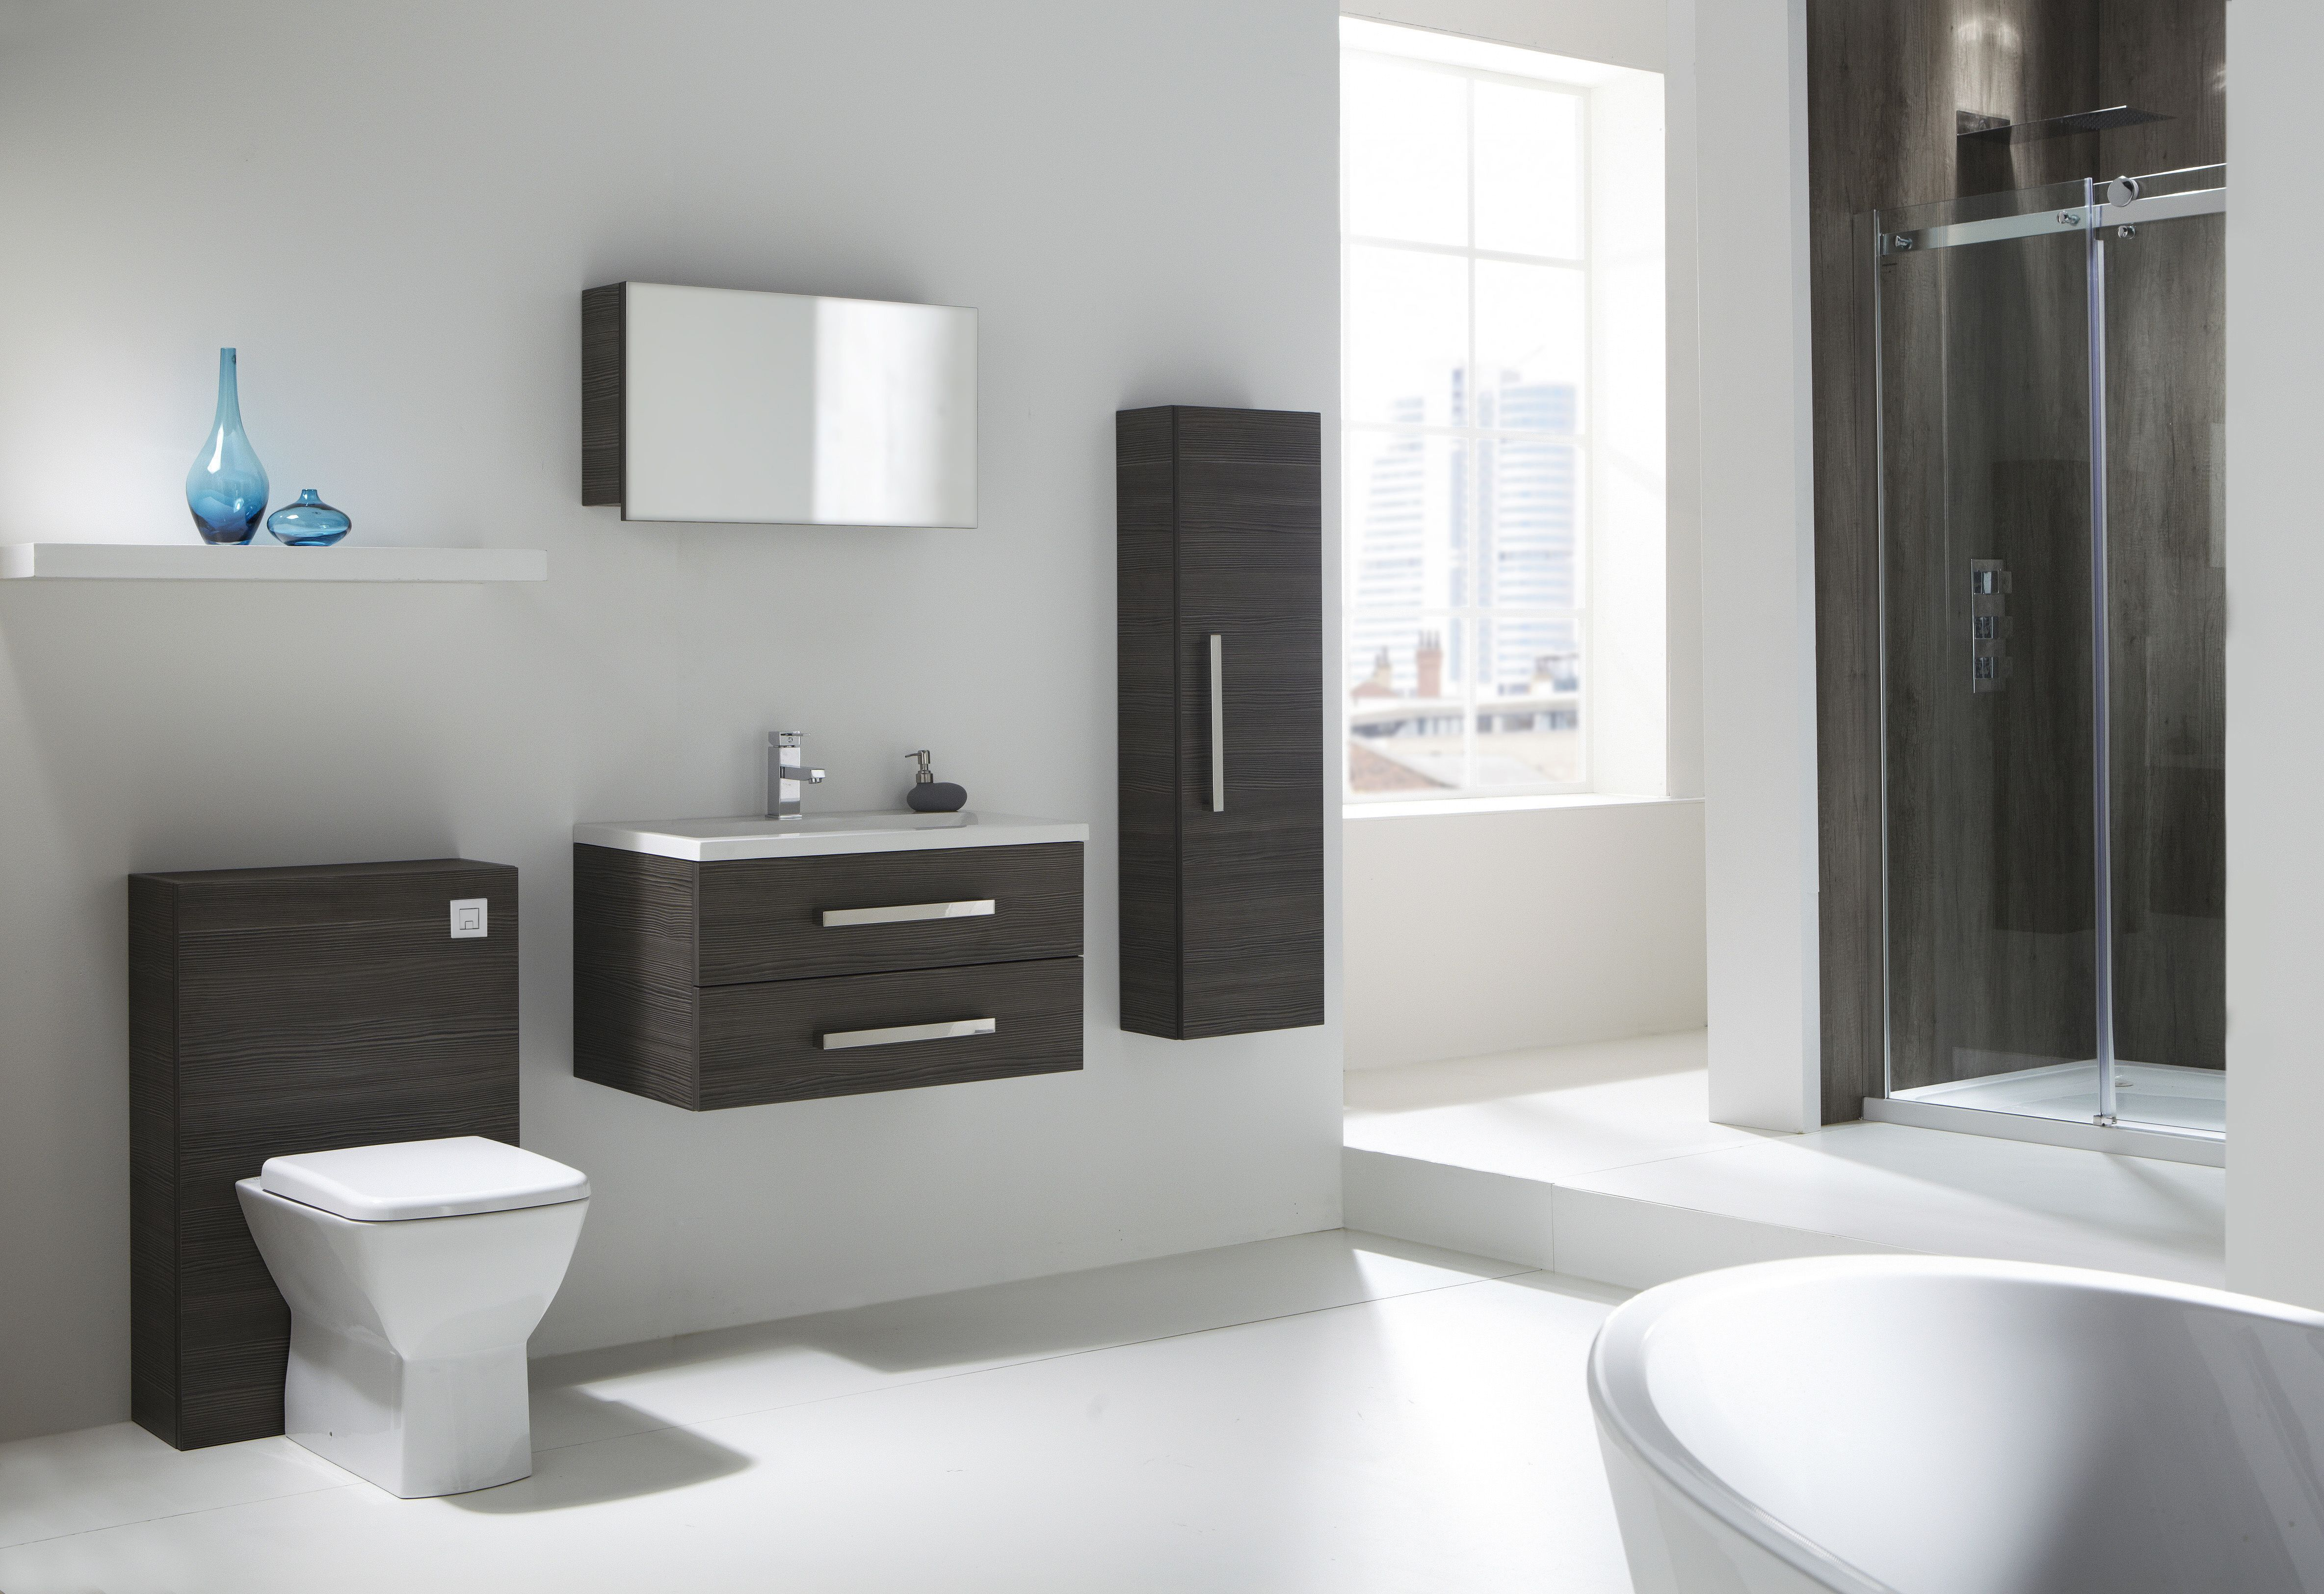 The Aquatrend brand offers a range of quality bathroom furniture to